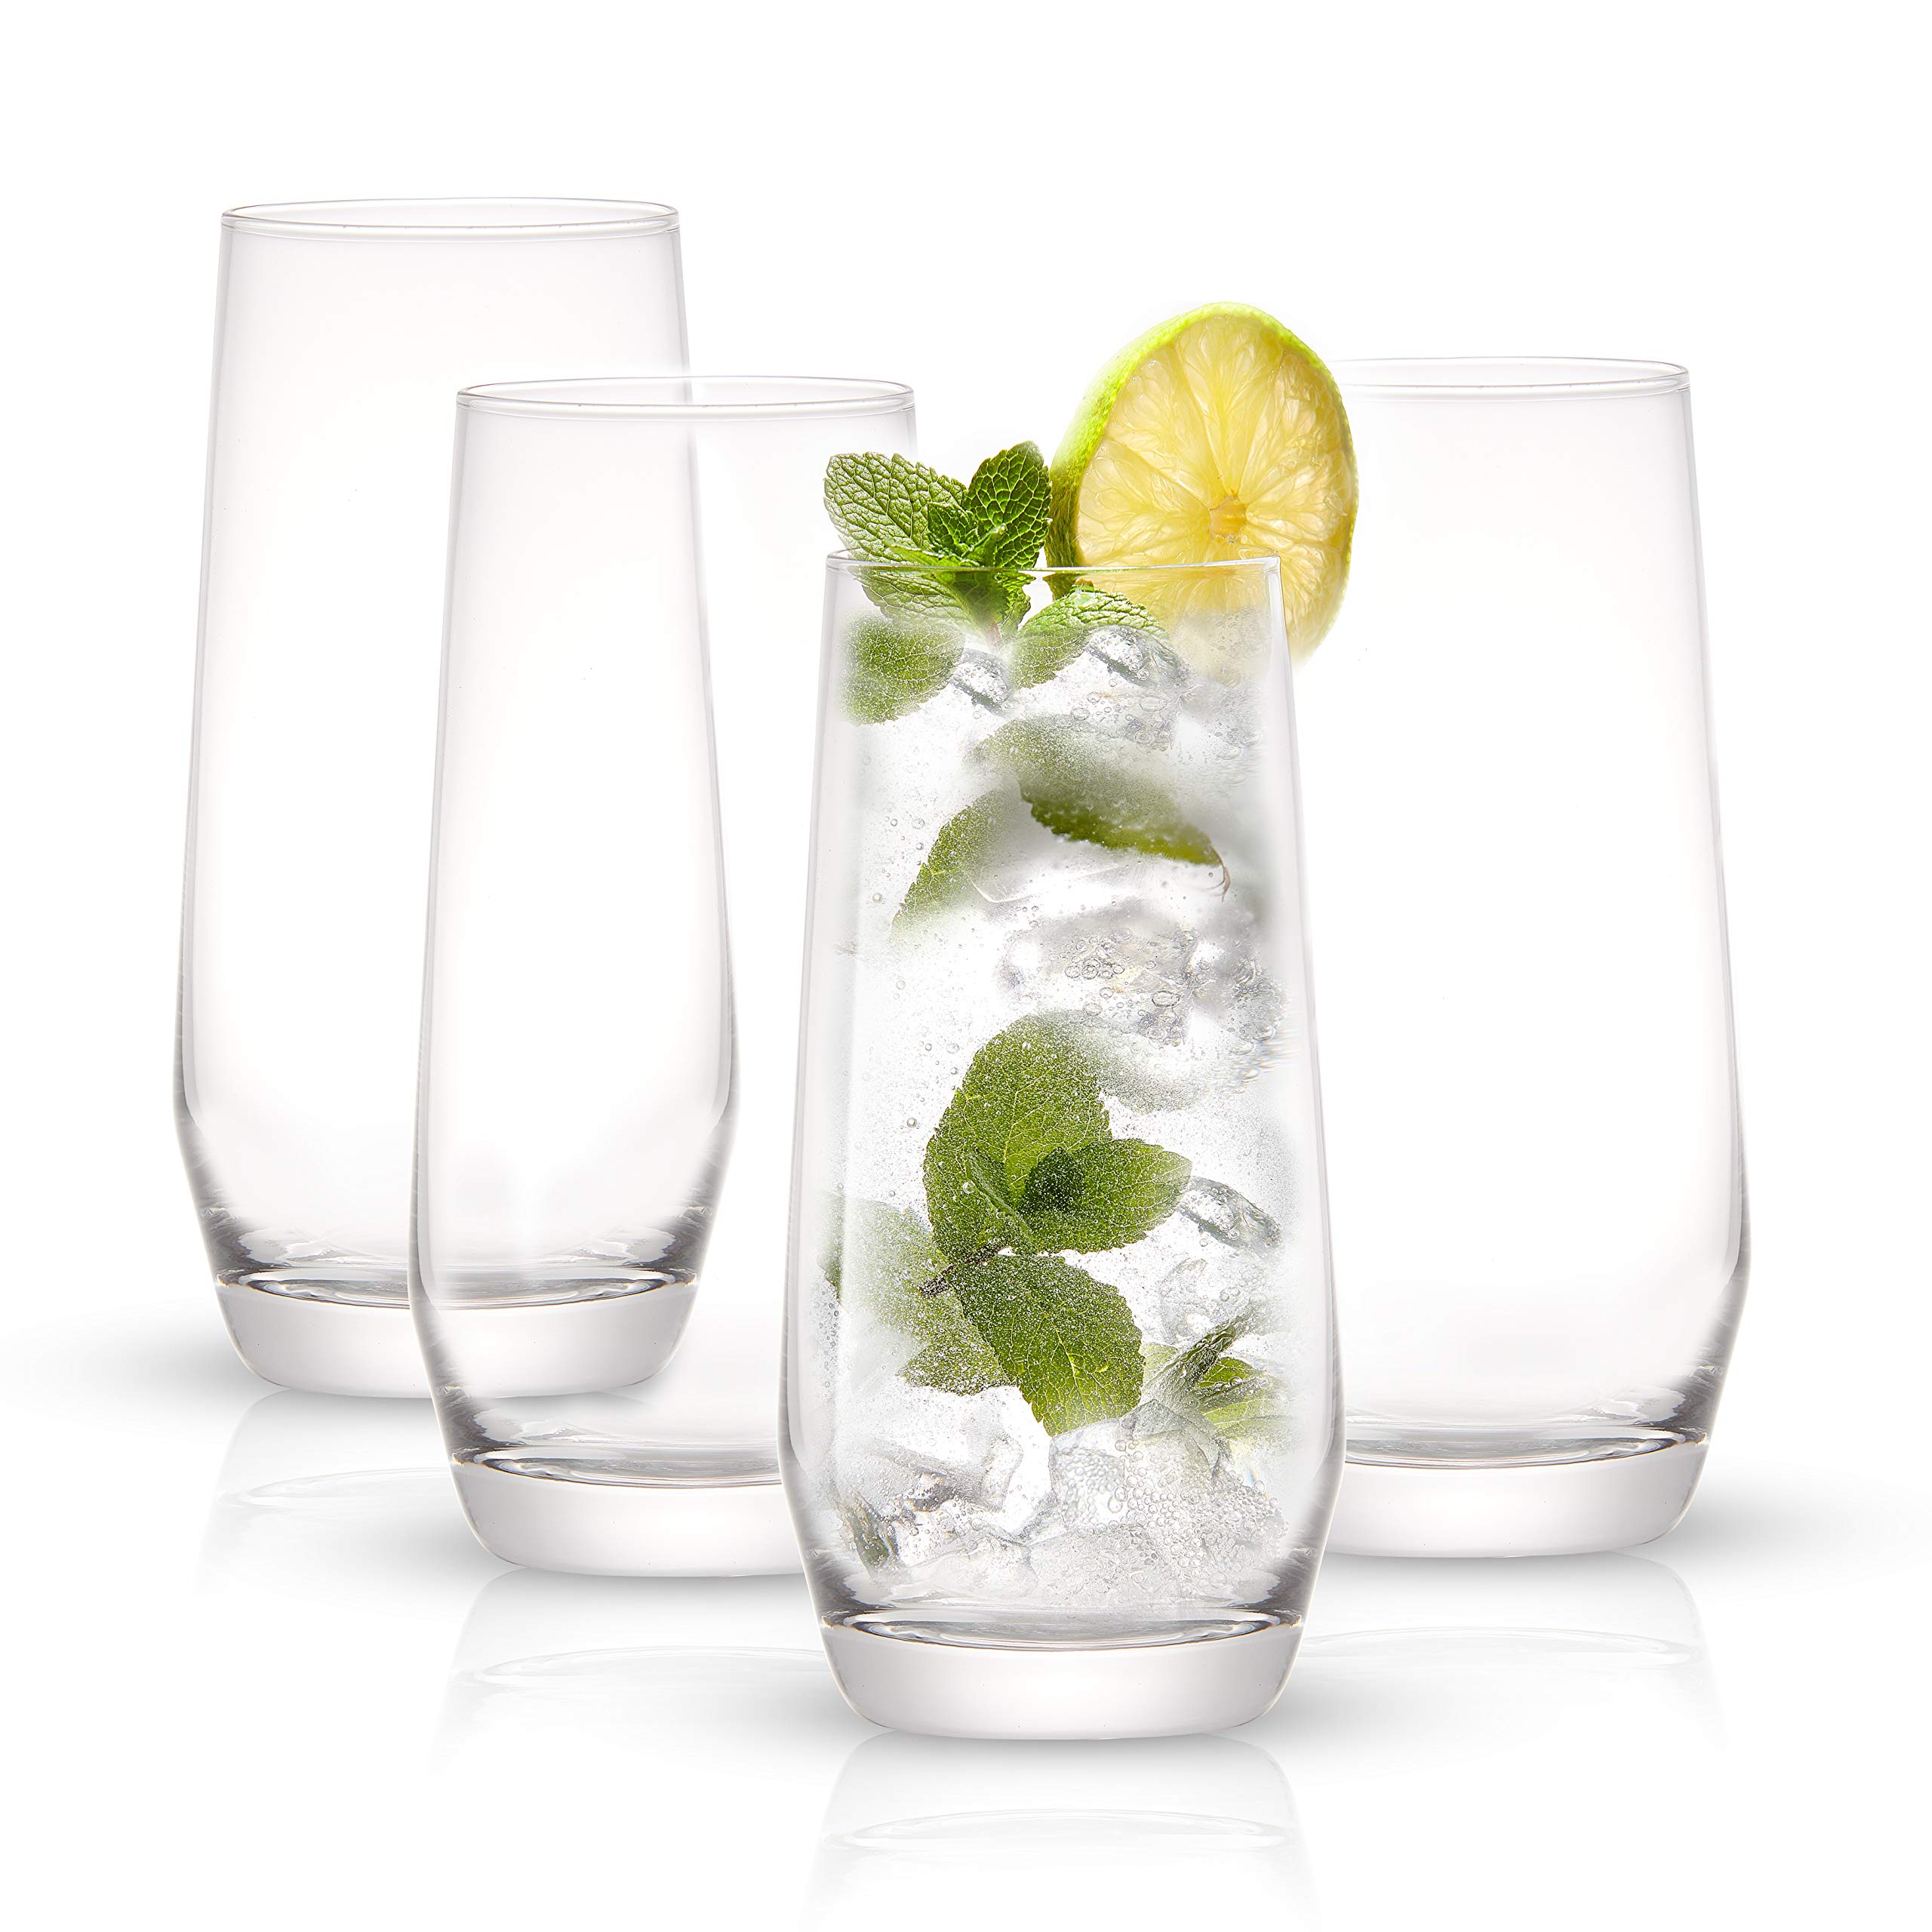 JoyJolt Gwen Highball Glasses Set of 4 Tall Drinking Glasses. 18oz Cocktail Glass Set. Lead-Free Crystal Glassware. Bourbon or Whiskey Glass Cup, Bar, Iced Tea, Water, Mojito and Tom Collins Glasses